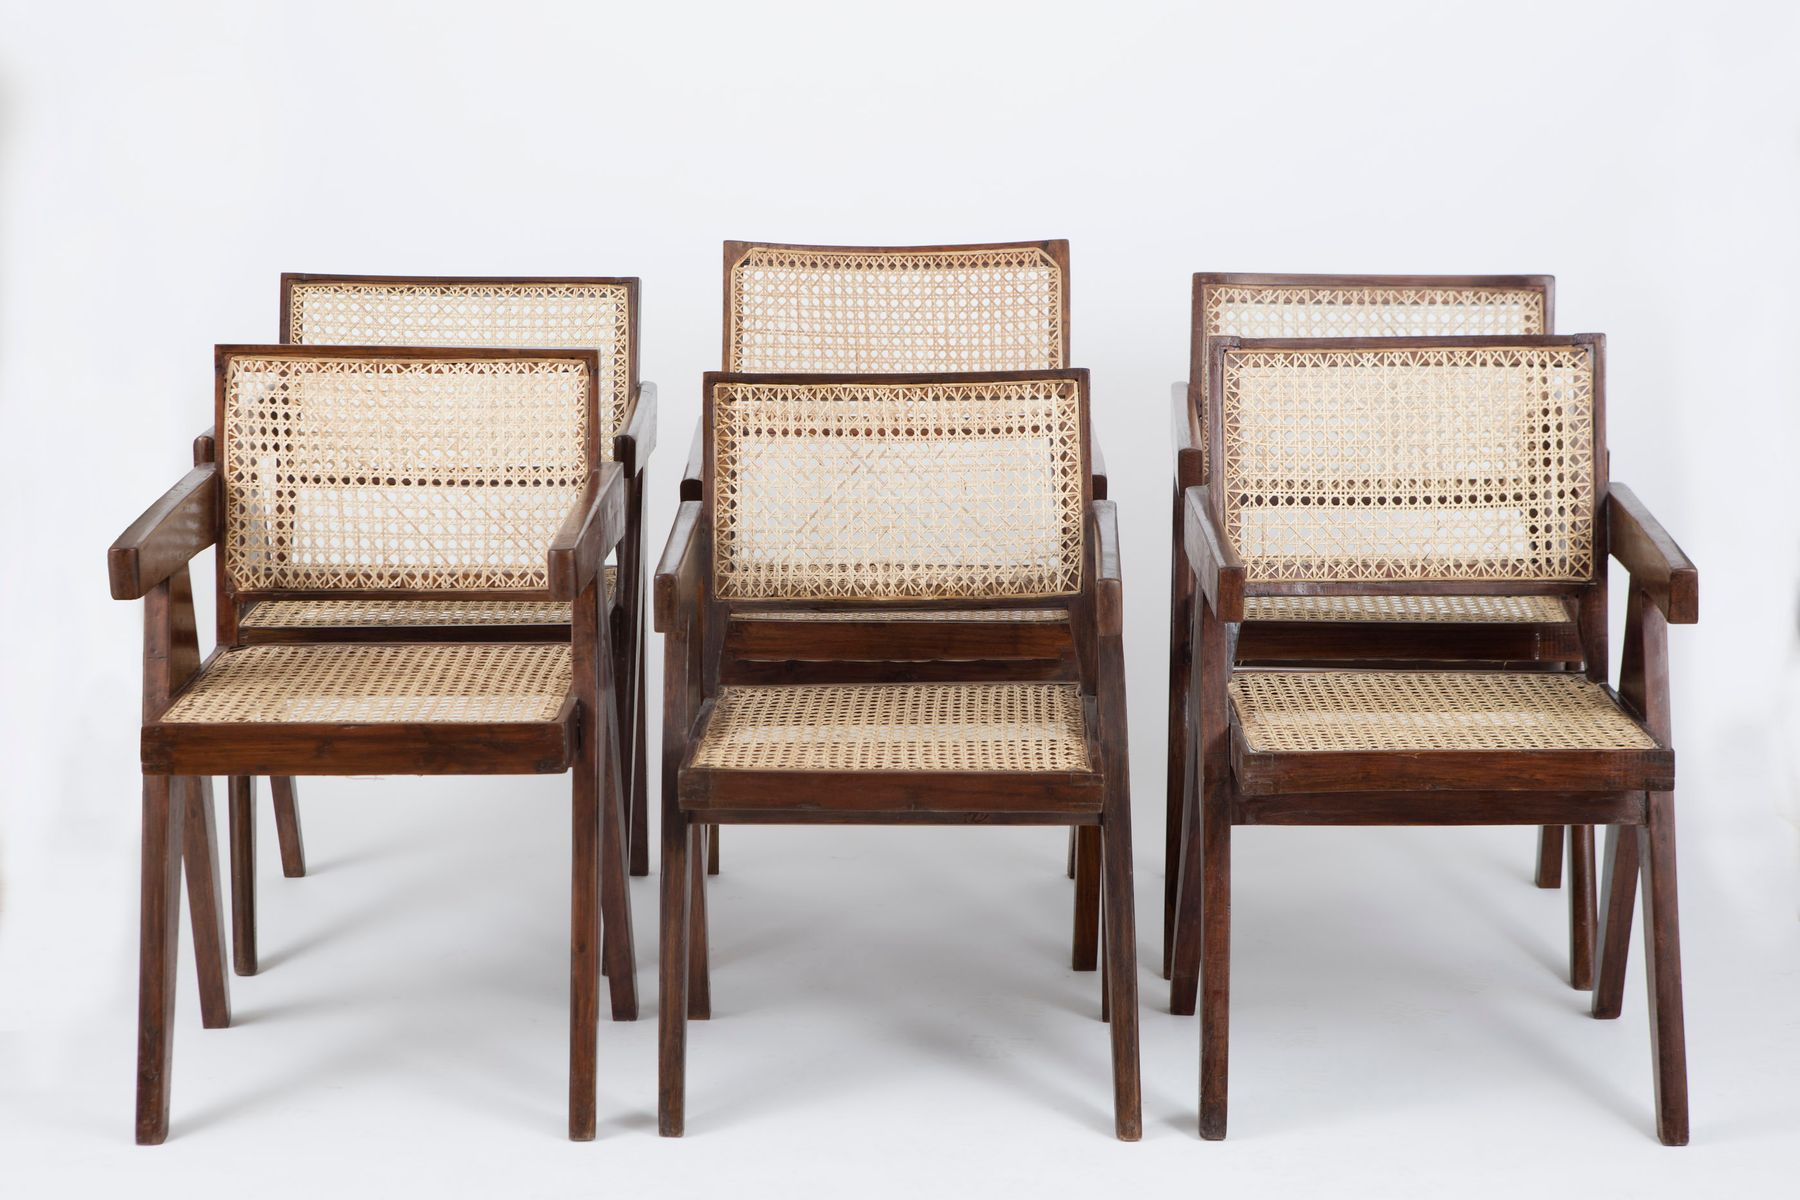 office cane chairs by pierre jeanneret set of 6 for sale at pamono. Black Bedroom Furniture Sets. Home Design Ideas